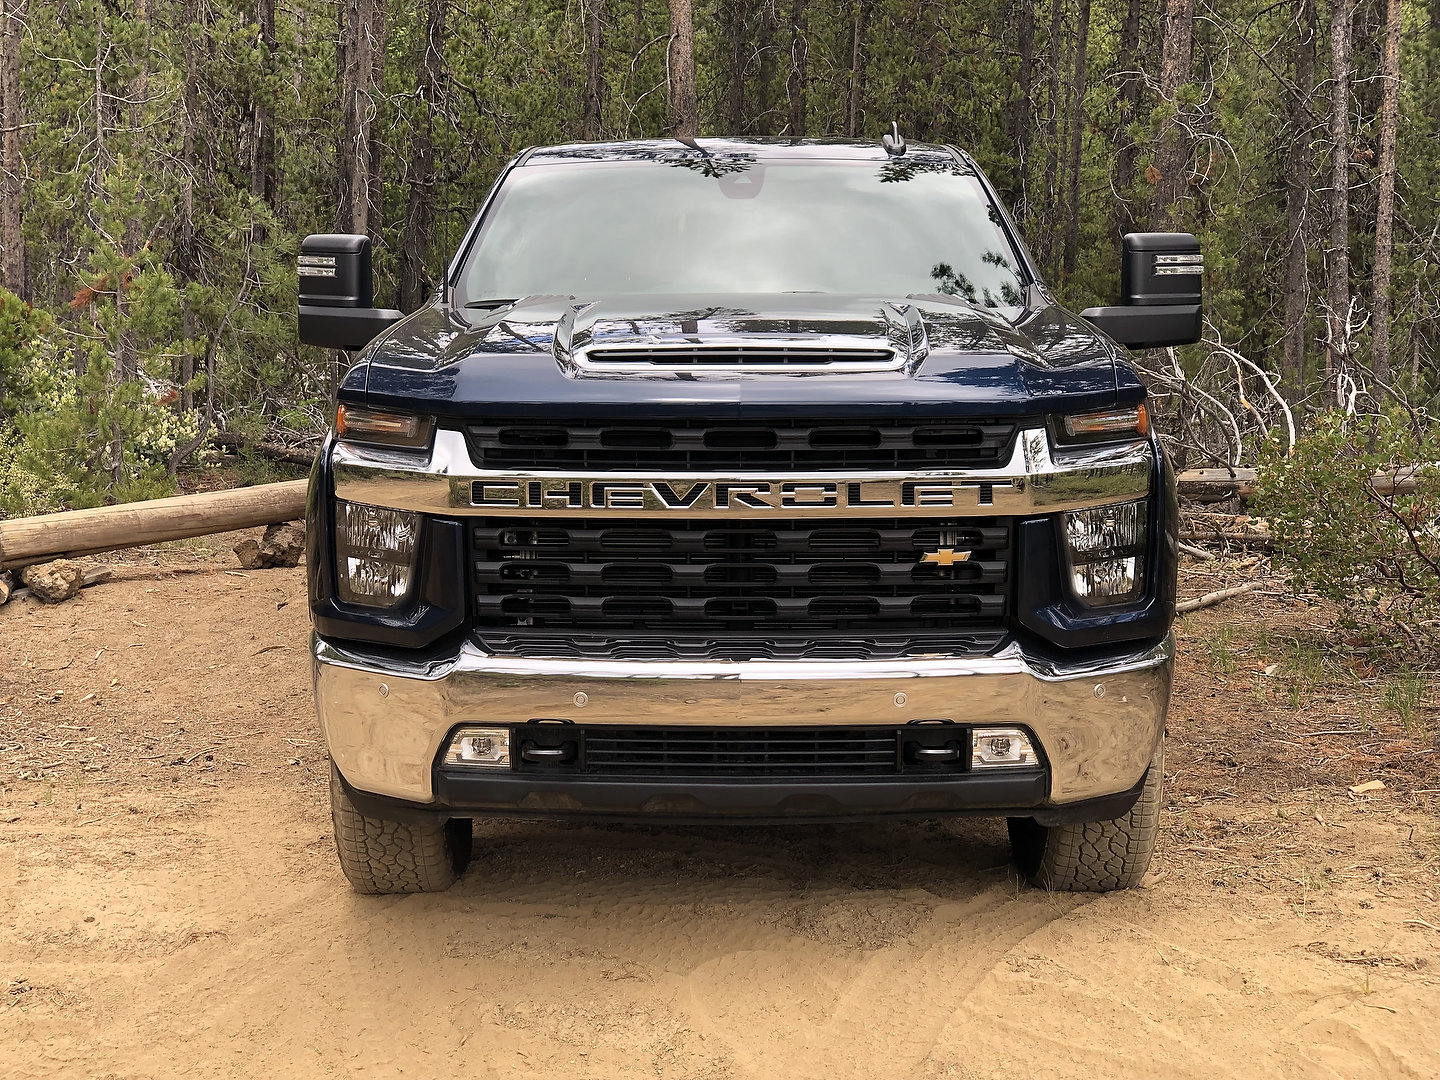 2020 Chevrolet Silverado HD First Drive Review: Never More ...